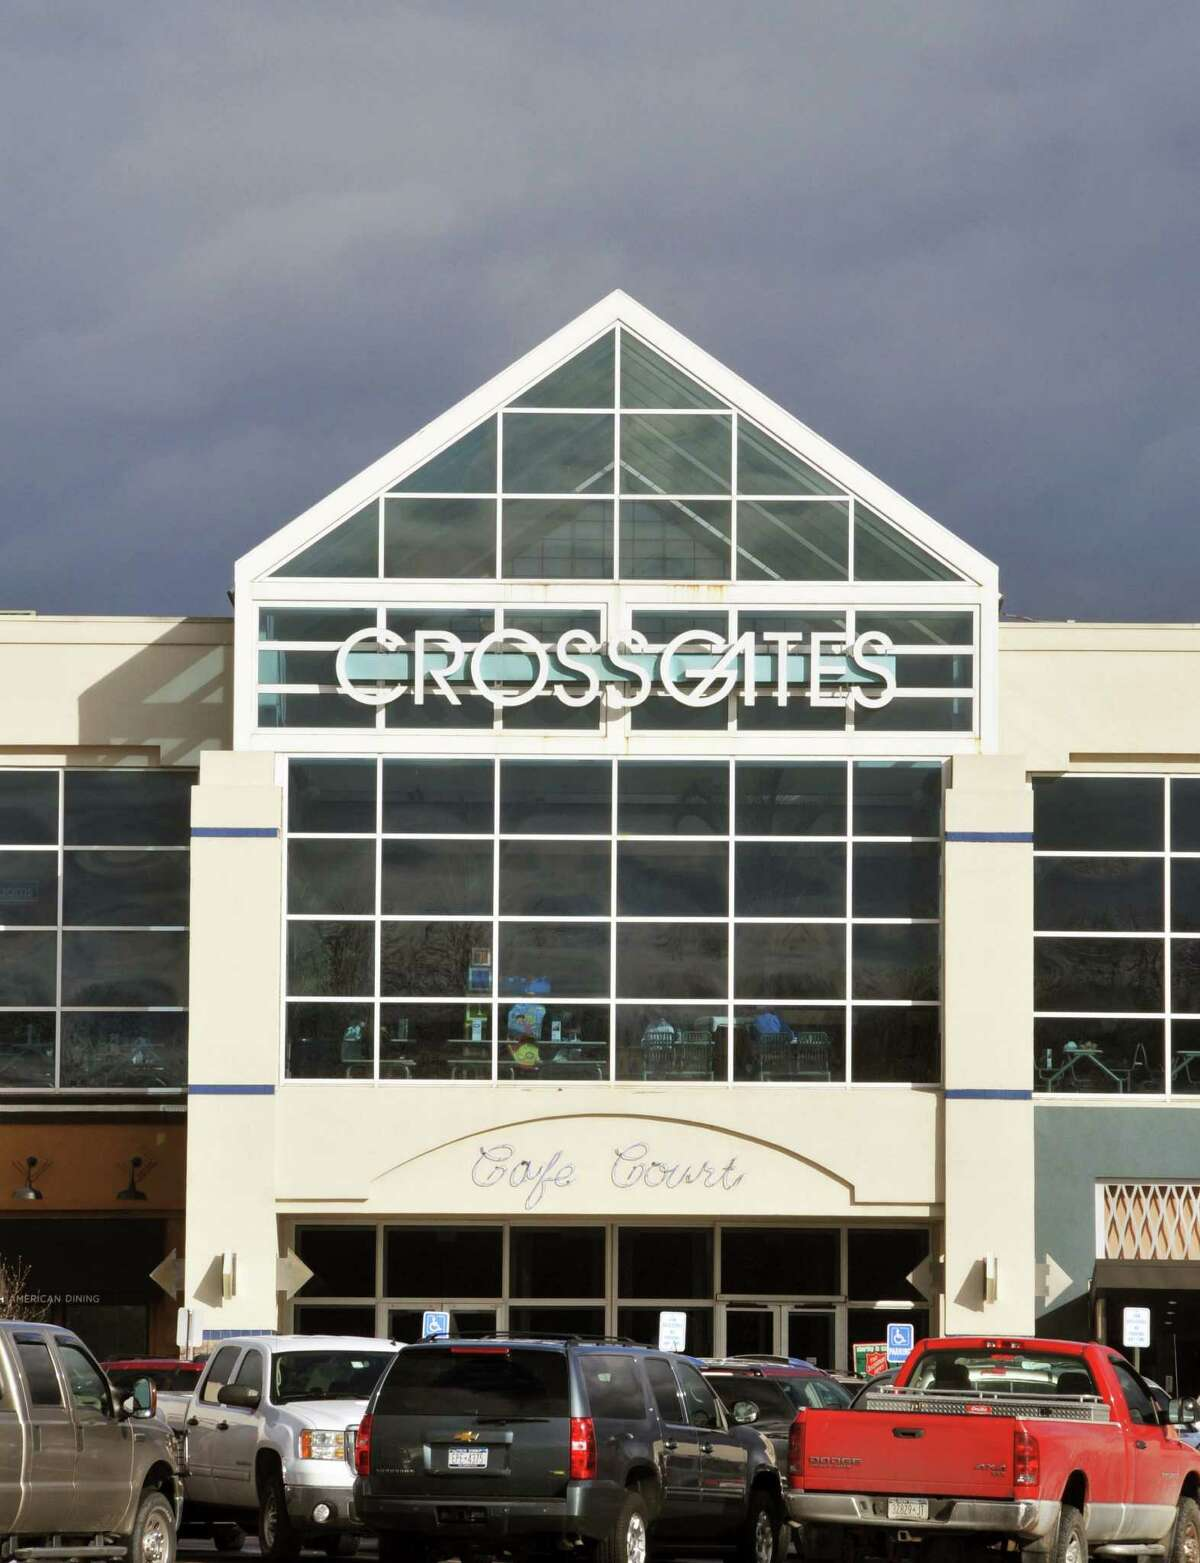 Entrance to Crossgates Mall in Guilderland Thursday afternoon December 3, 2009. (John Carl D'Annibale / Times Union)